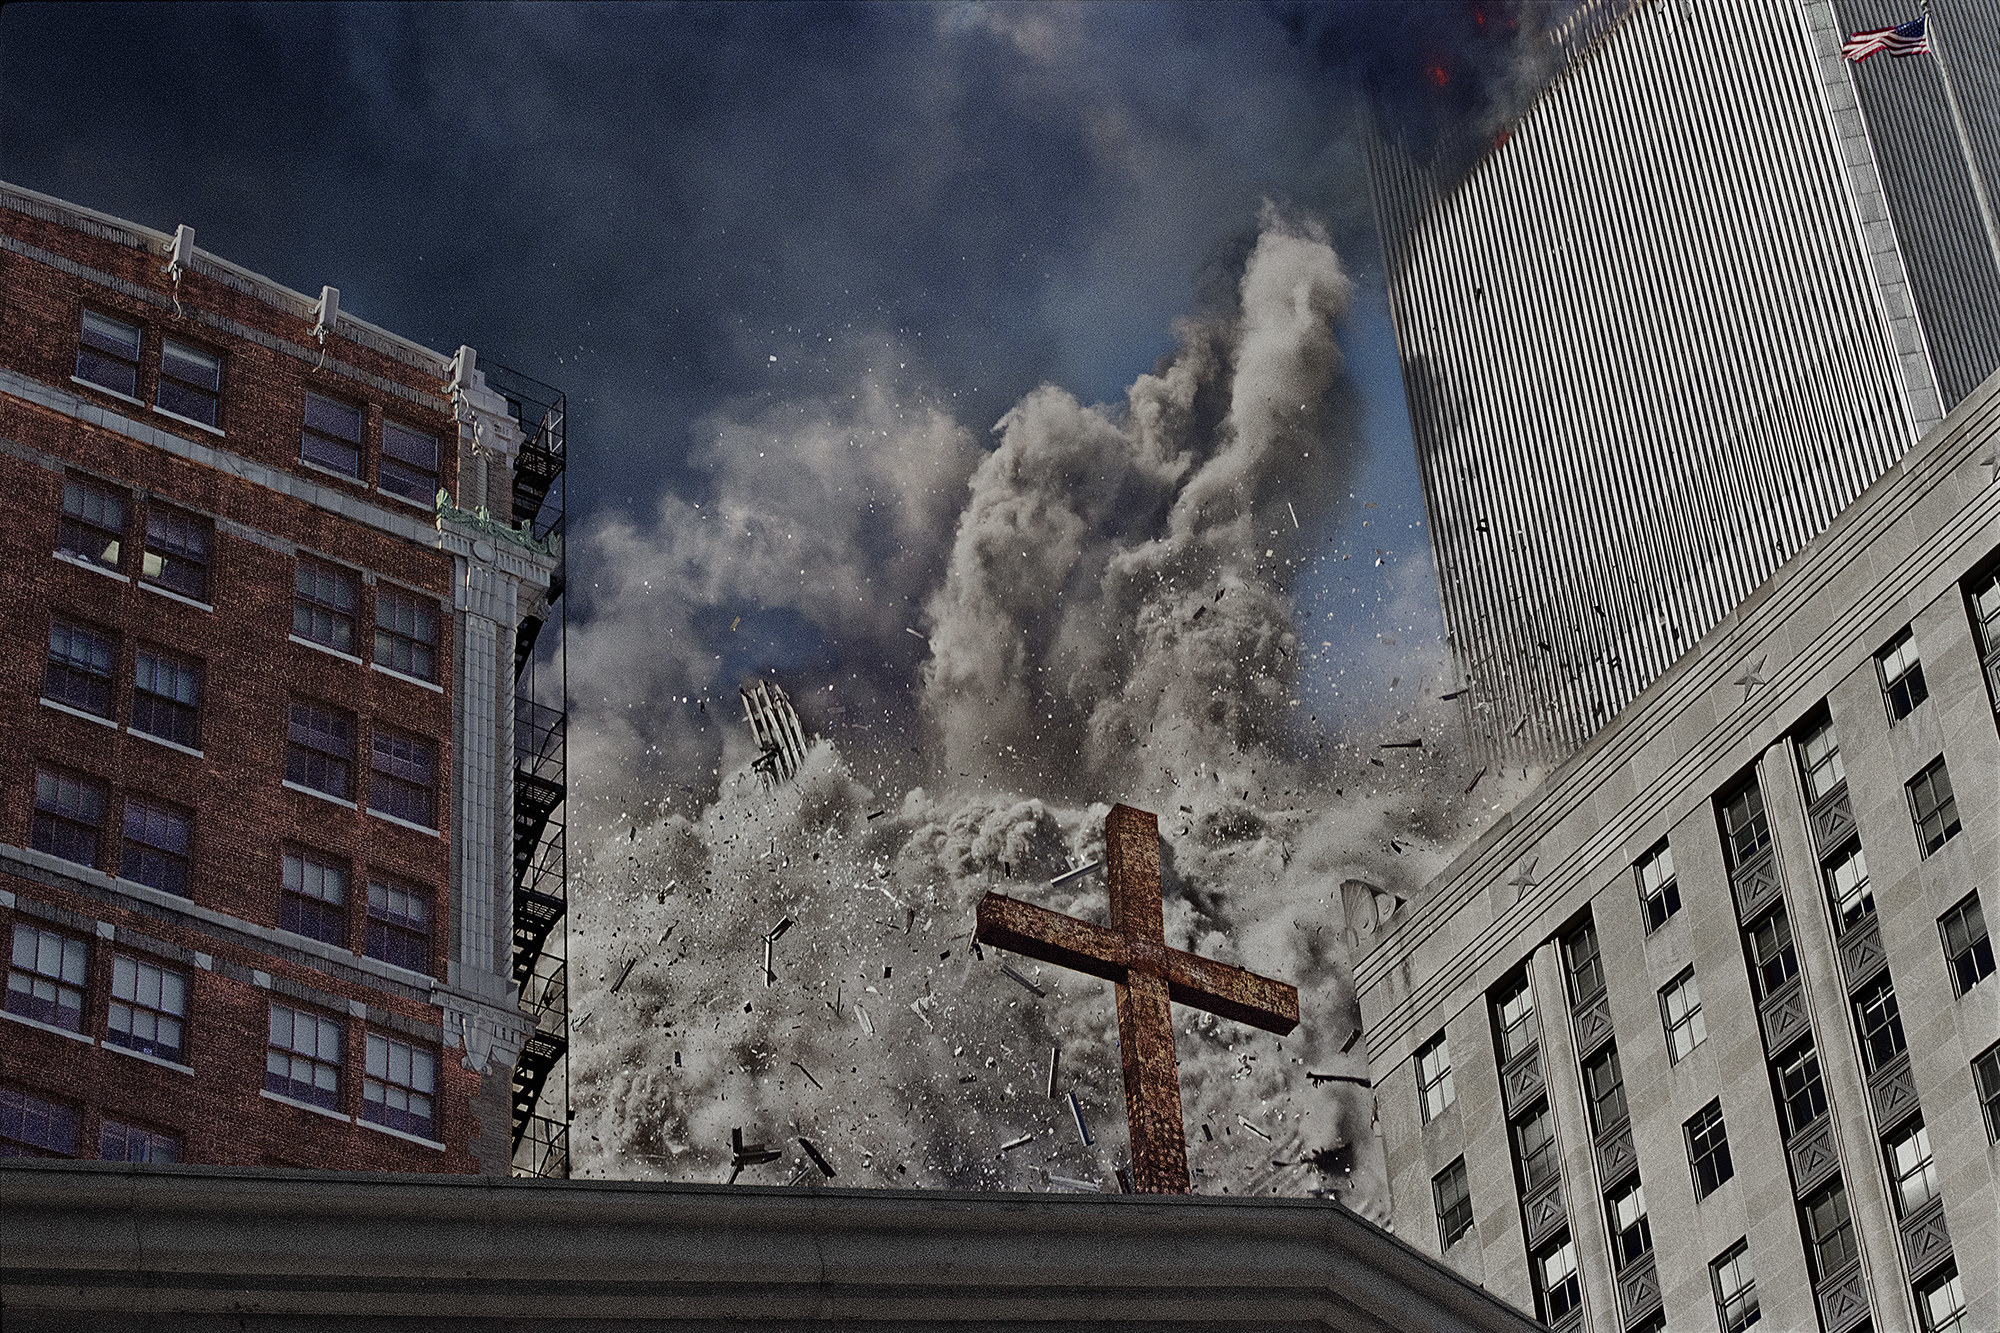 The debris from the first tower collapsing is seen behind a cross on a church